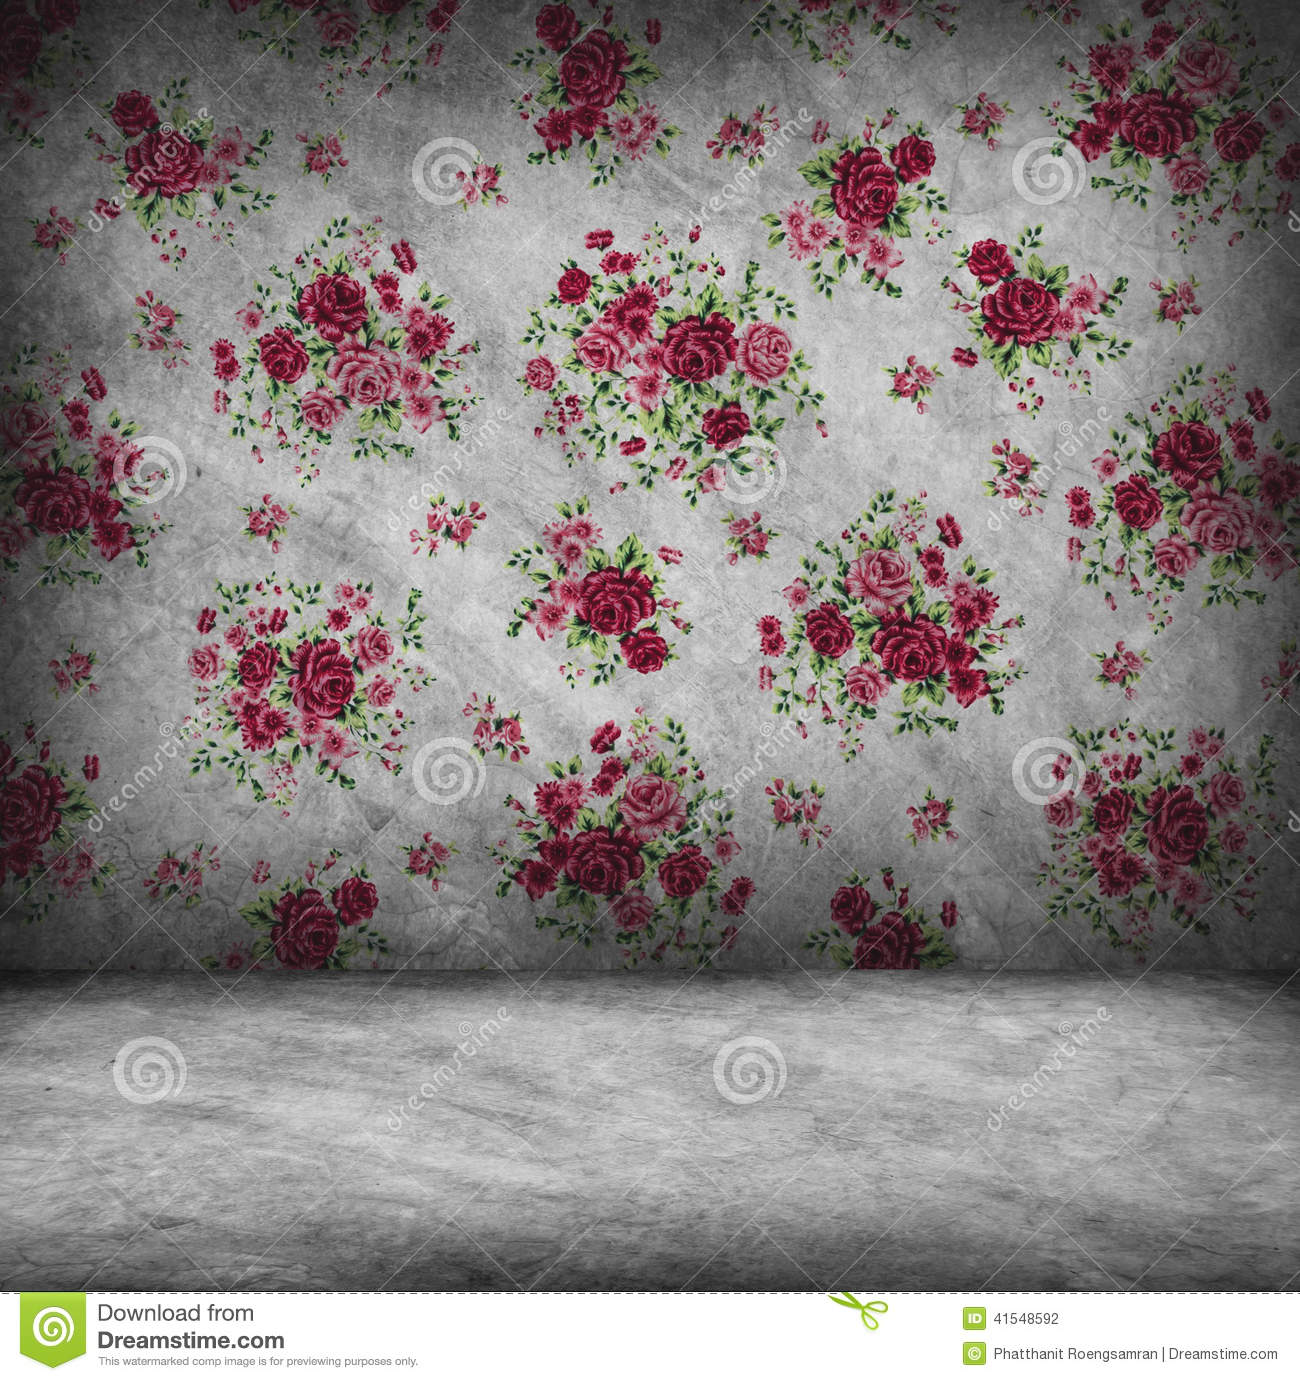 Concrete wall and floor texture with red rose wallpaper for Red wallpaper designs for walls